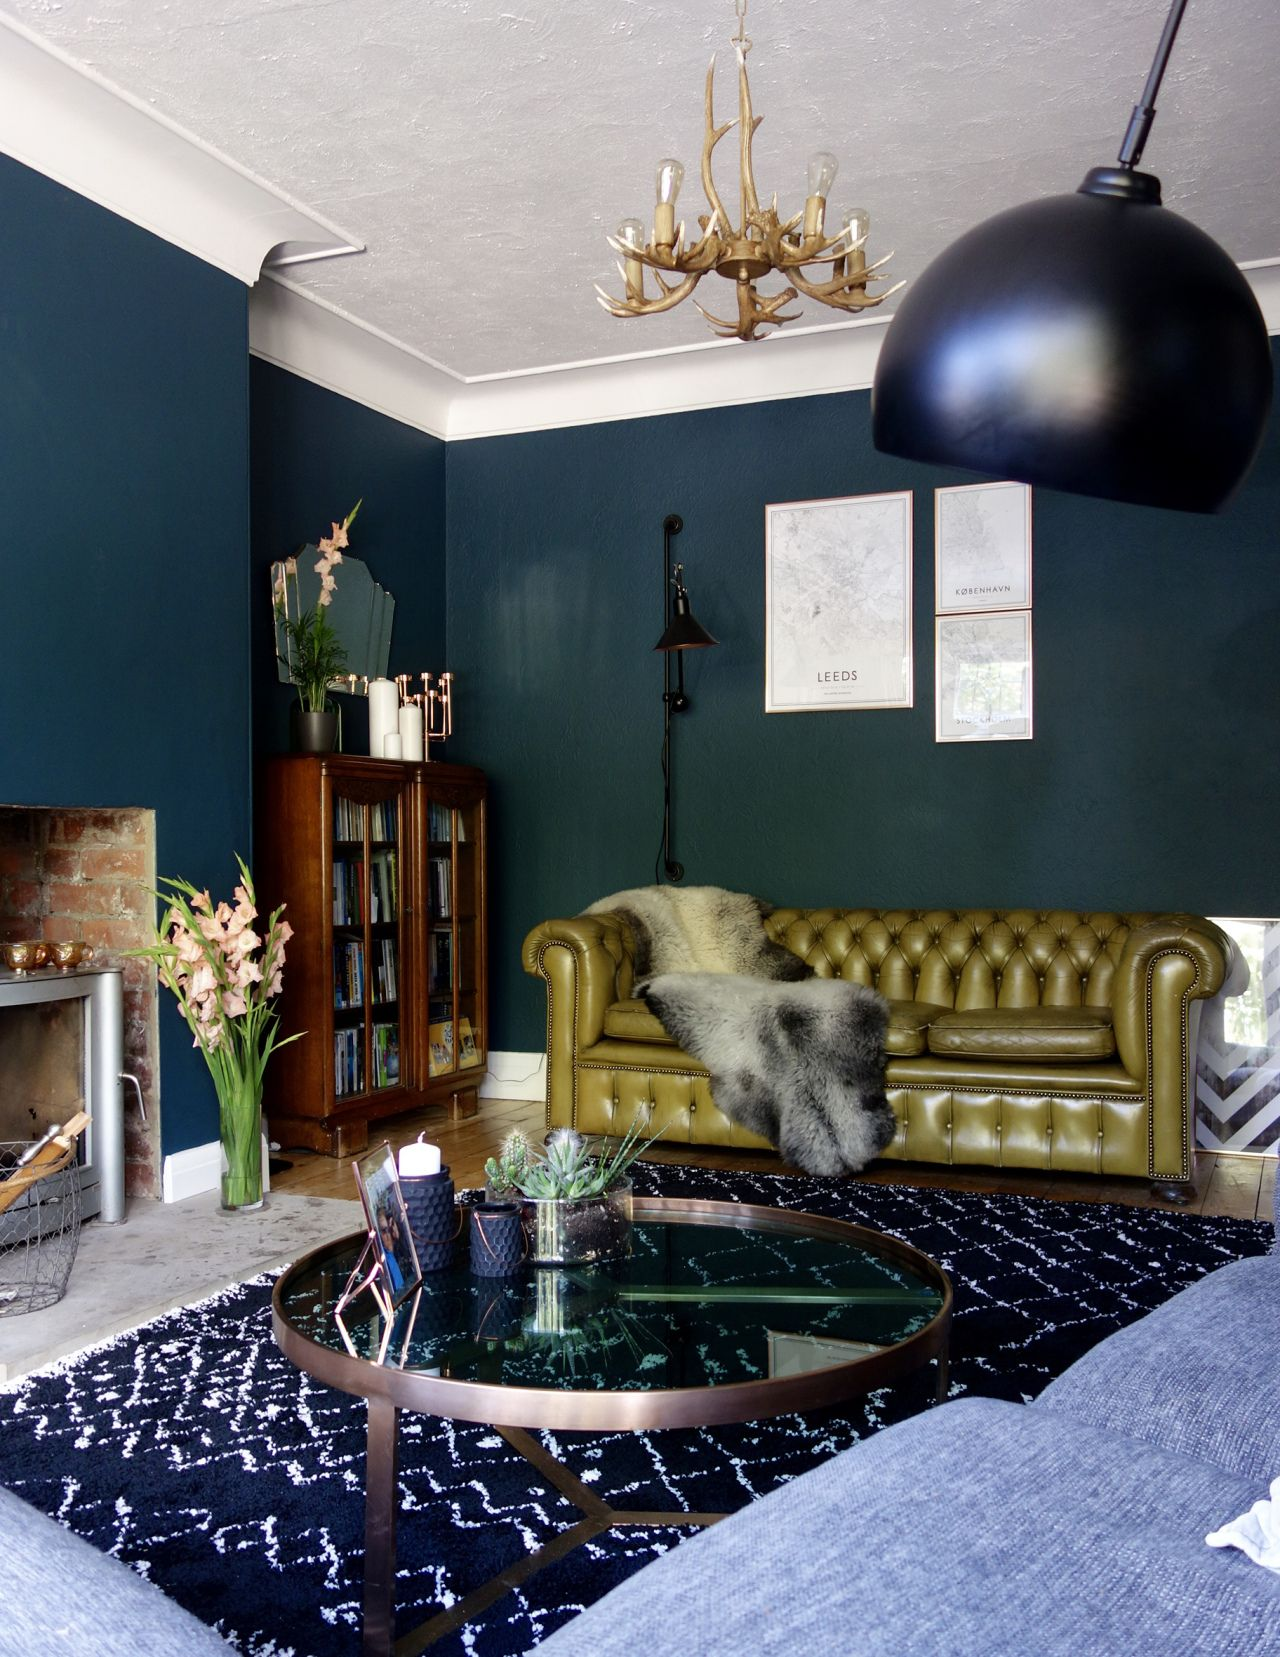 Attirant The Eclectic Living Room. Dark Green Walls, Vintage And Salvaged Items  Mixed With New Scandi Inspired Pieces. Eclectic Interiors At Making Spaces.